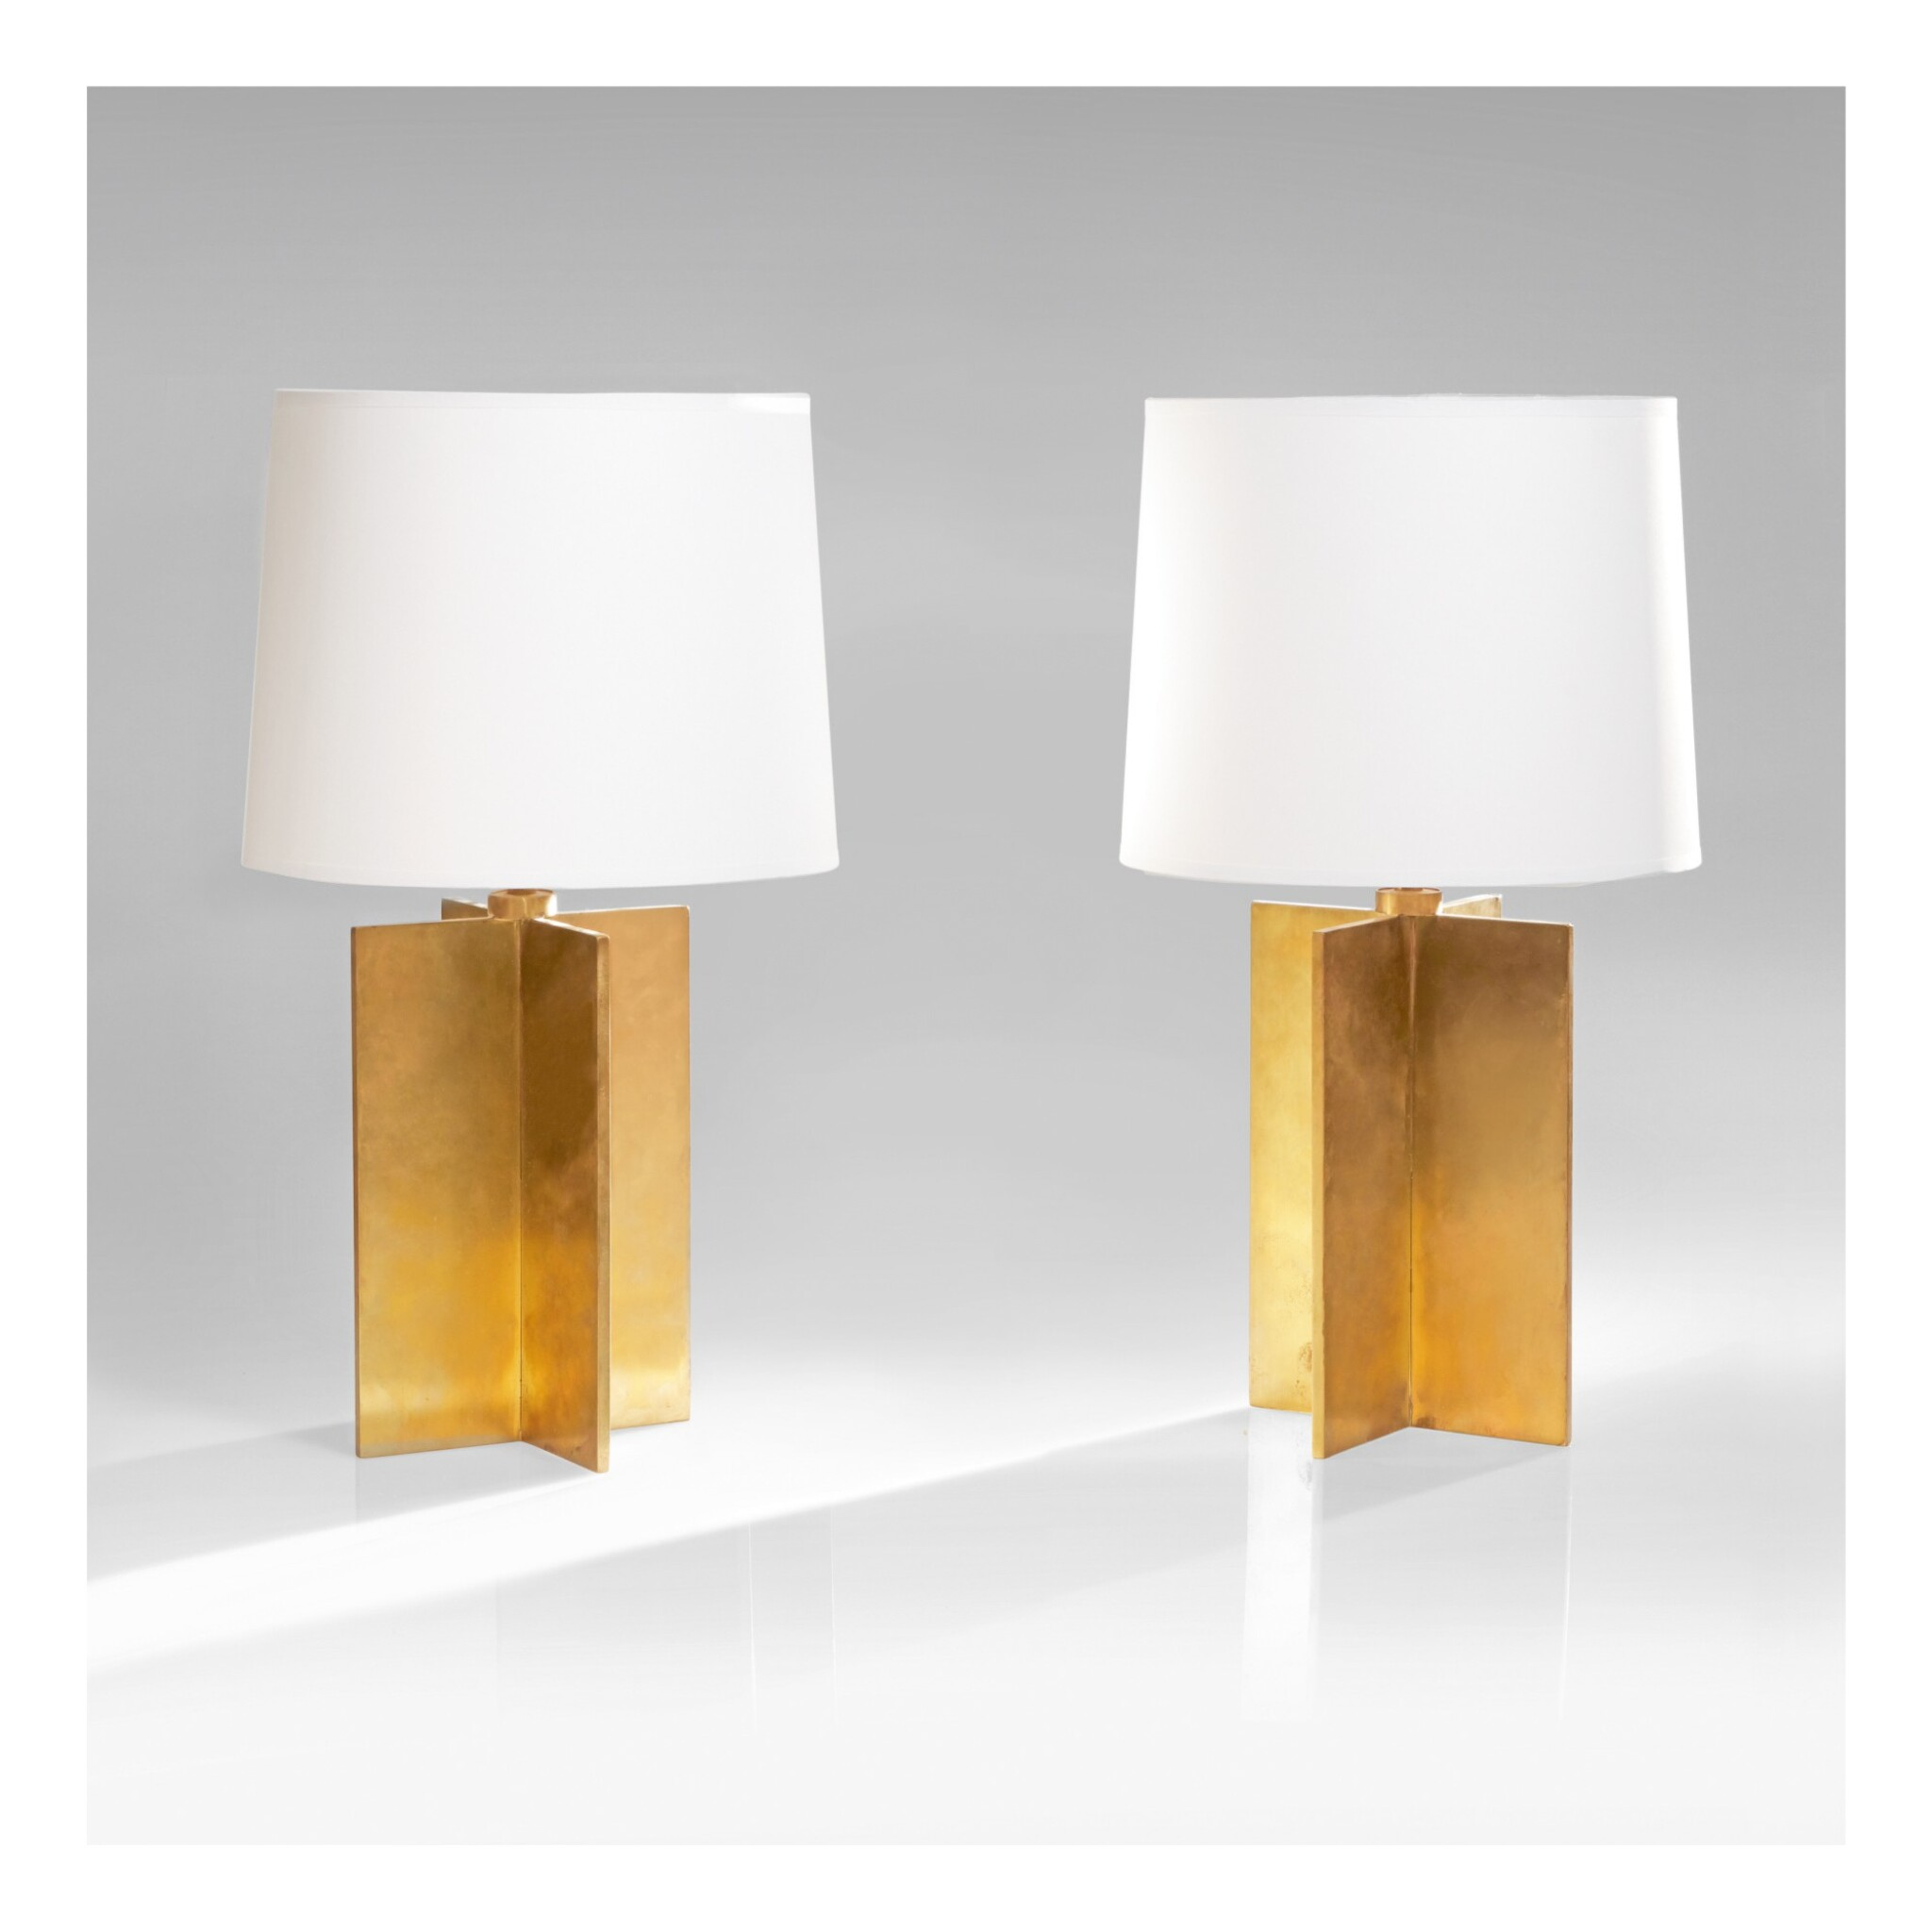 """View 1 of Lot 34. Pair of """"Croisillon"""" Table Lamps."""